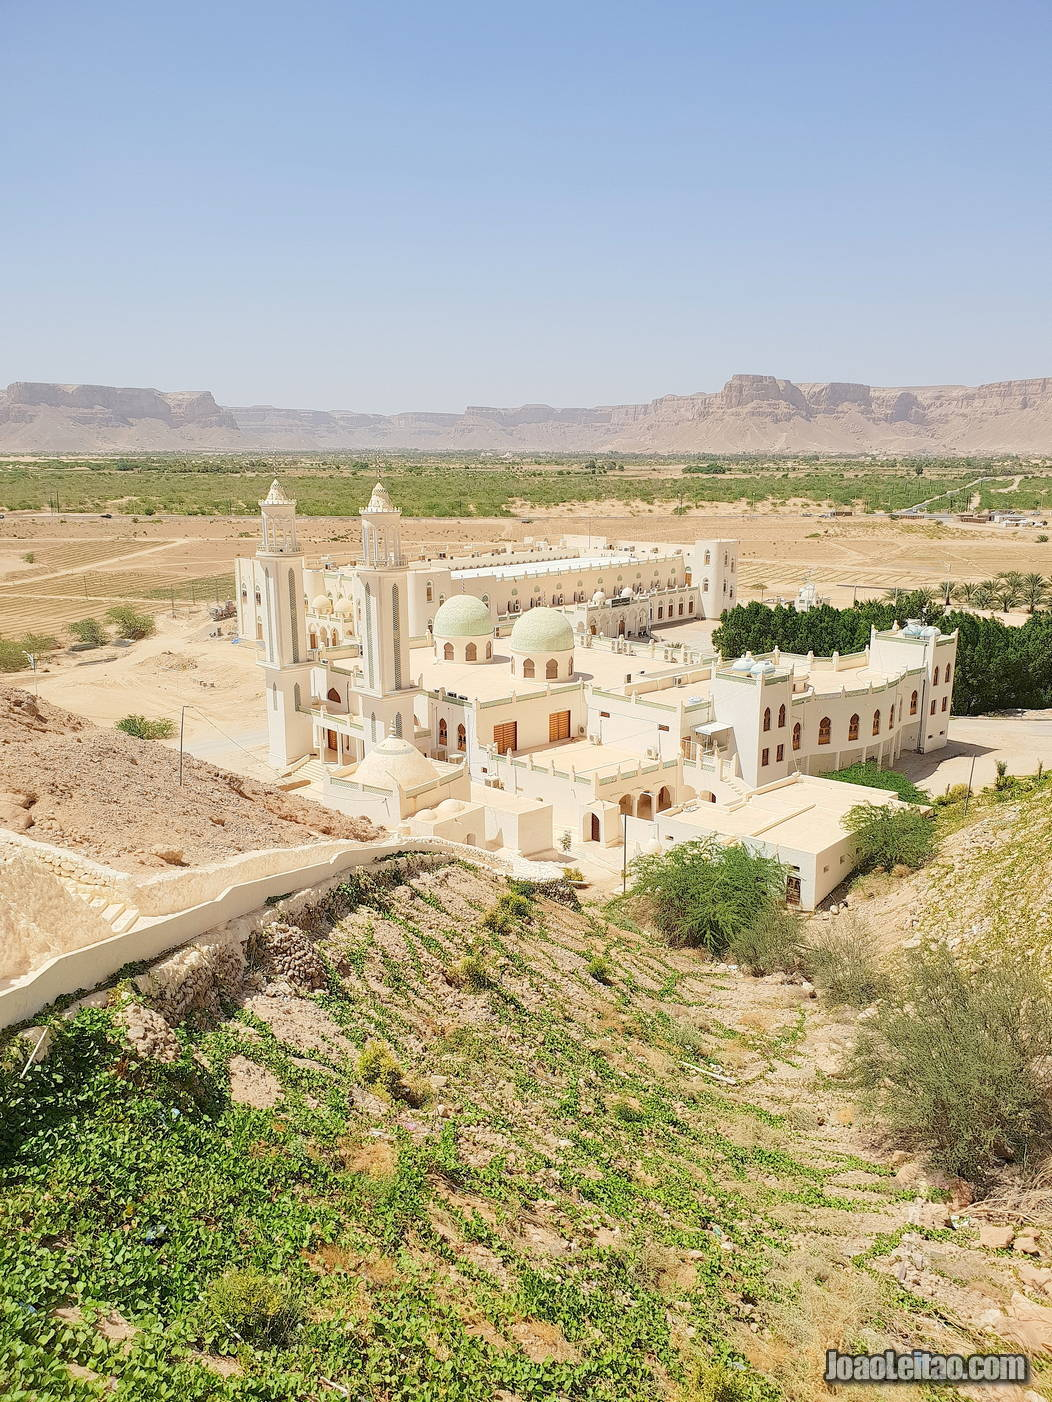 AHMAD AL-HABASHI SHRINE YEMEN